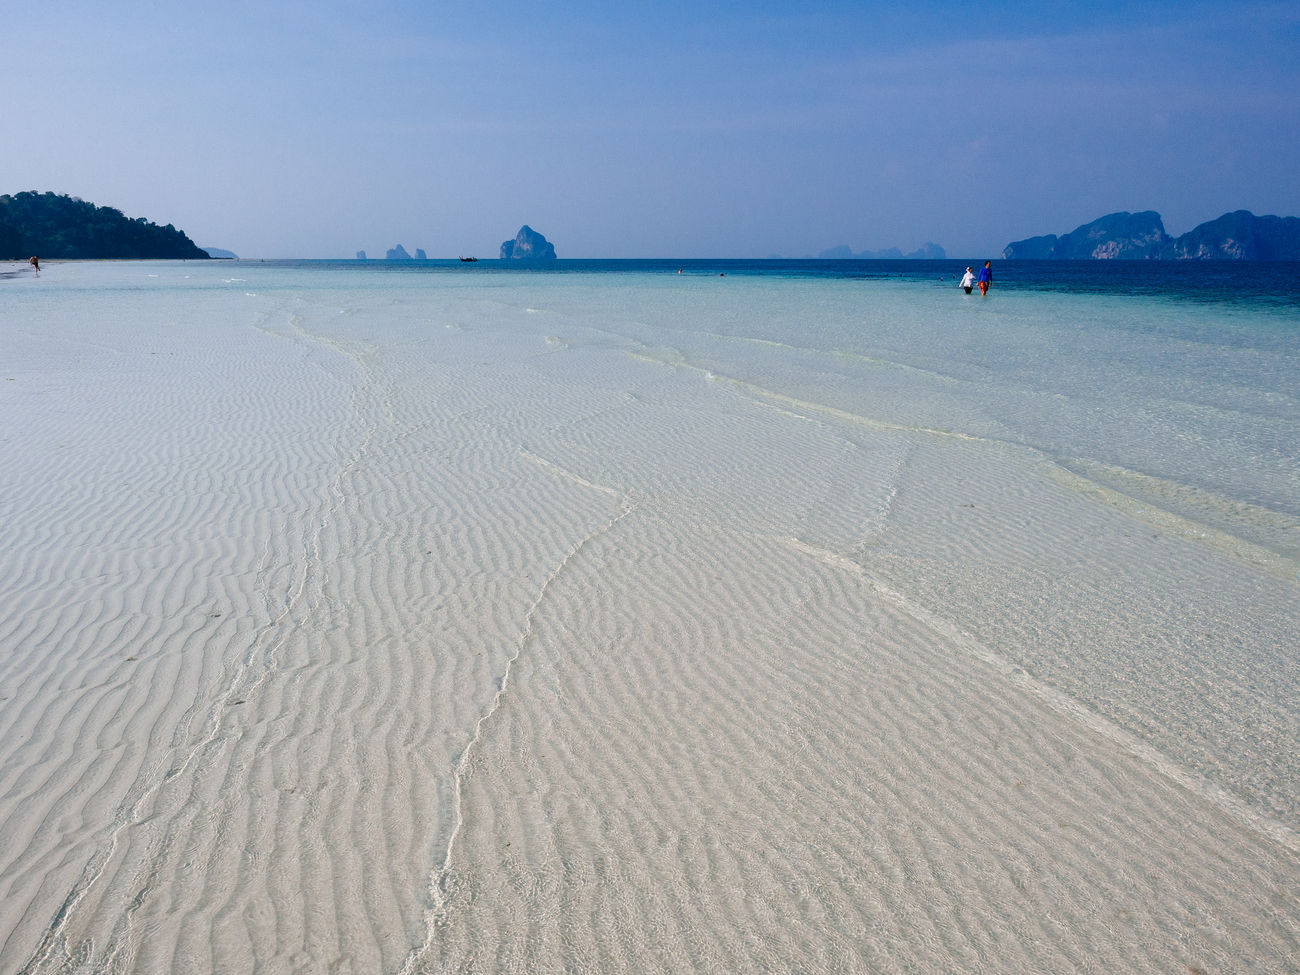 The beach at Koh Kradan Beach Beauty In Nature Day Horizon Over Water Landscape Nature Outdoors Sand Scenics Sea Sky Thailand Tranquil Scene Tranquility Travel Destinations Water